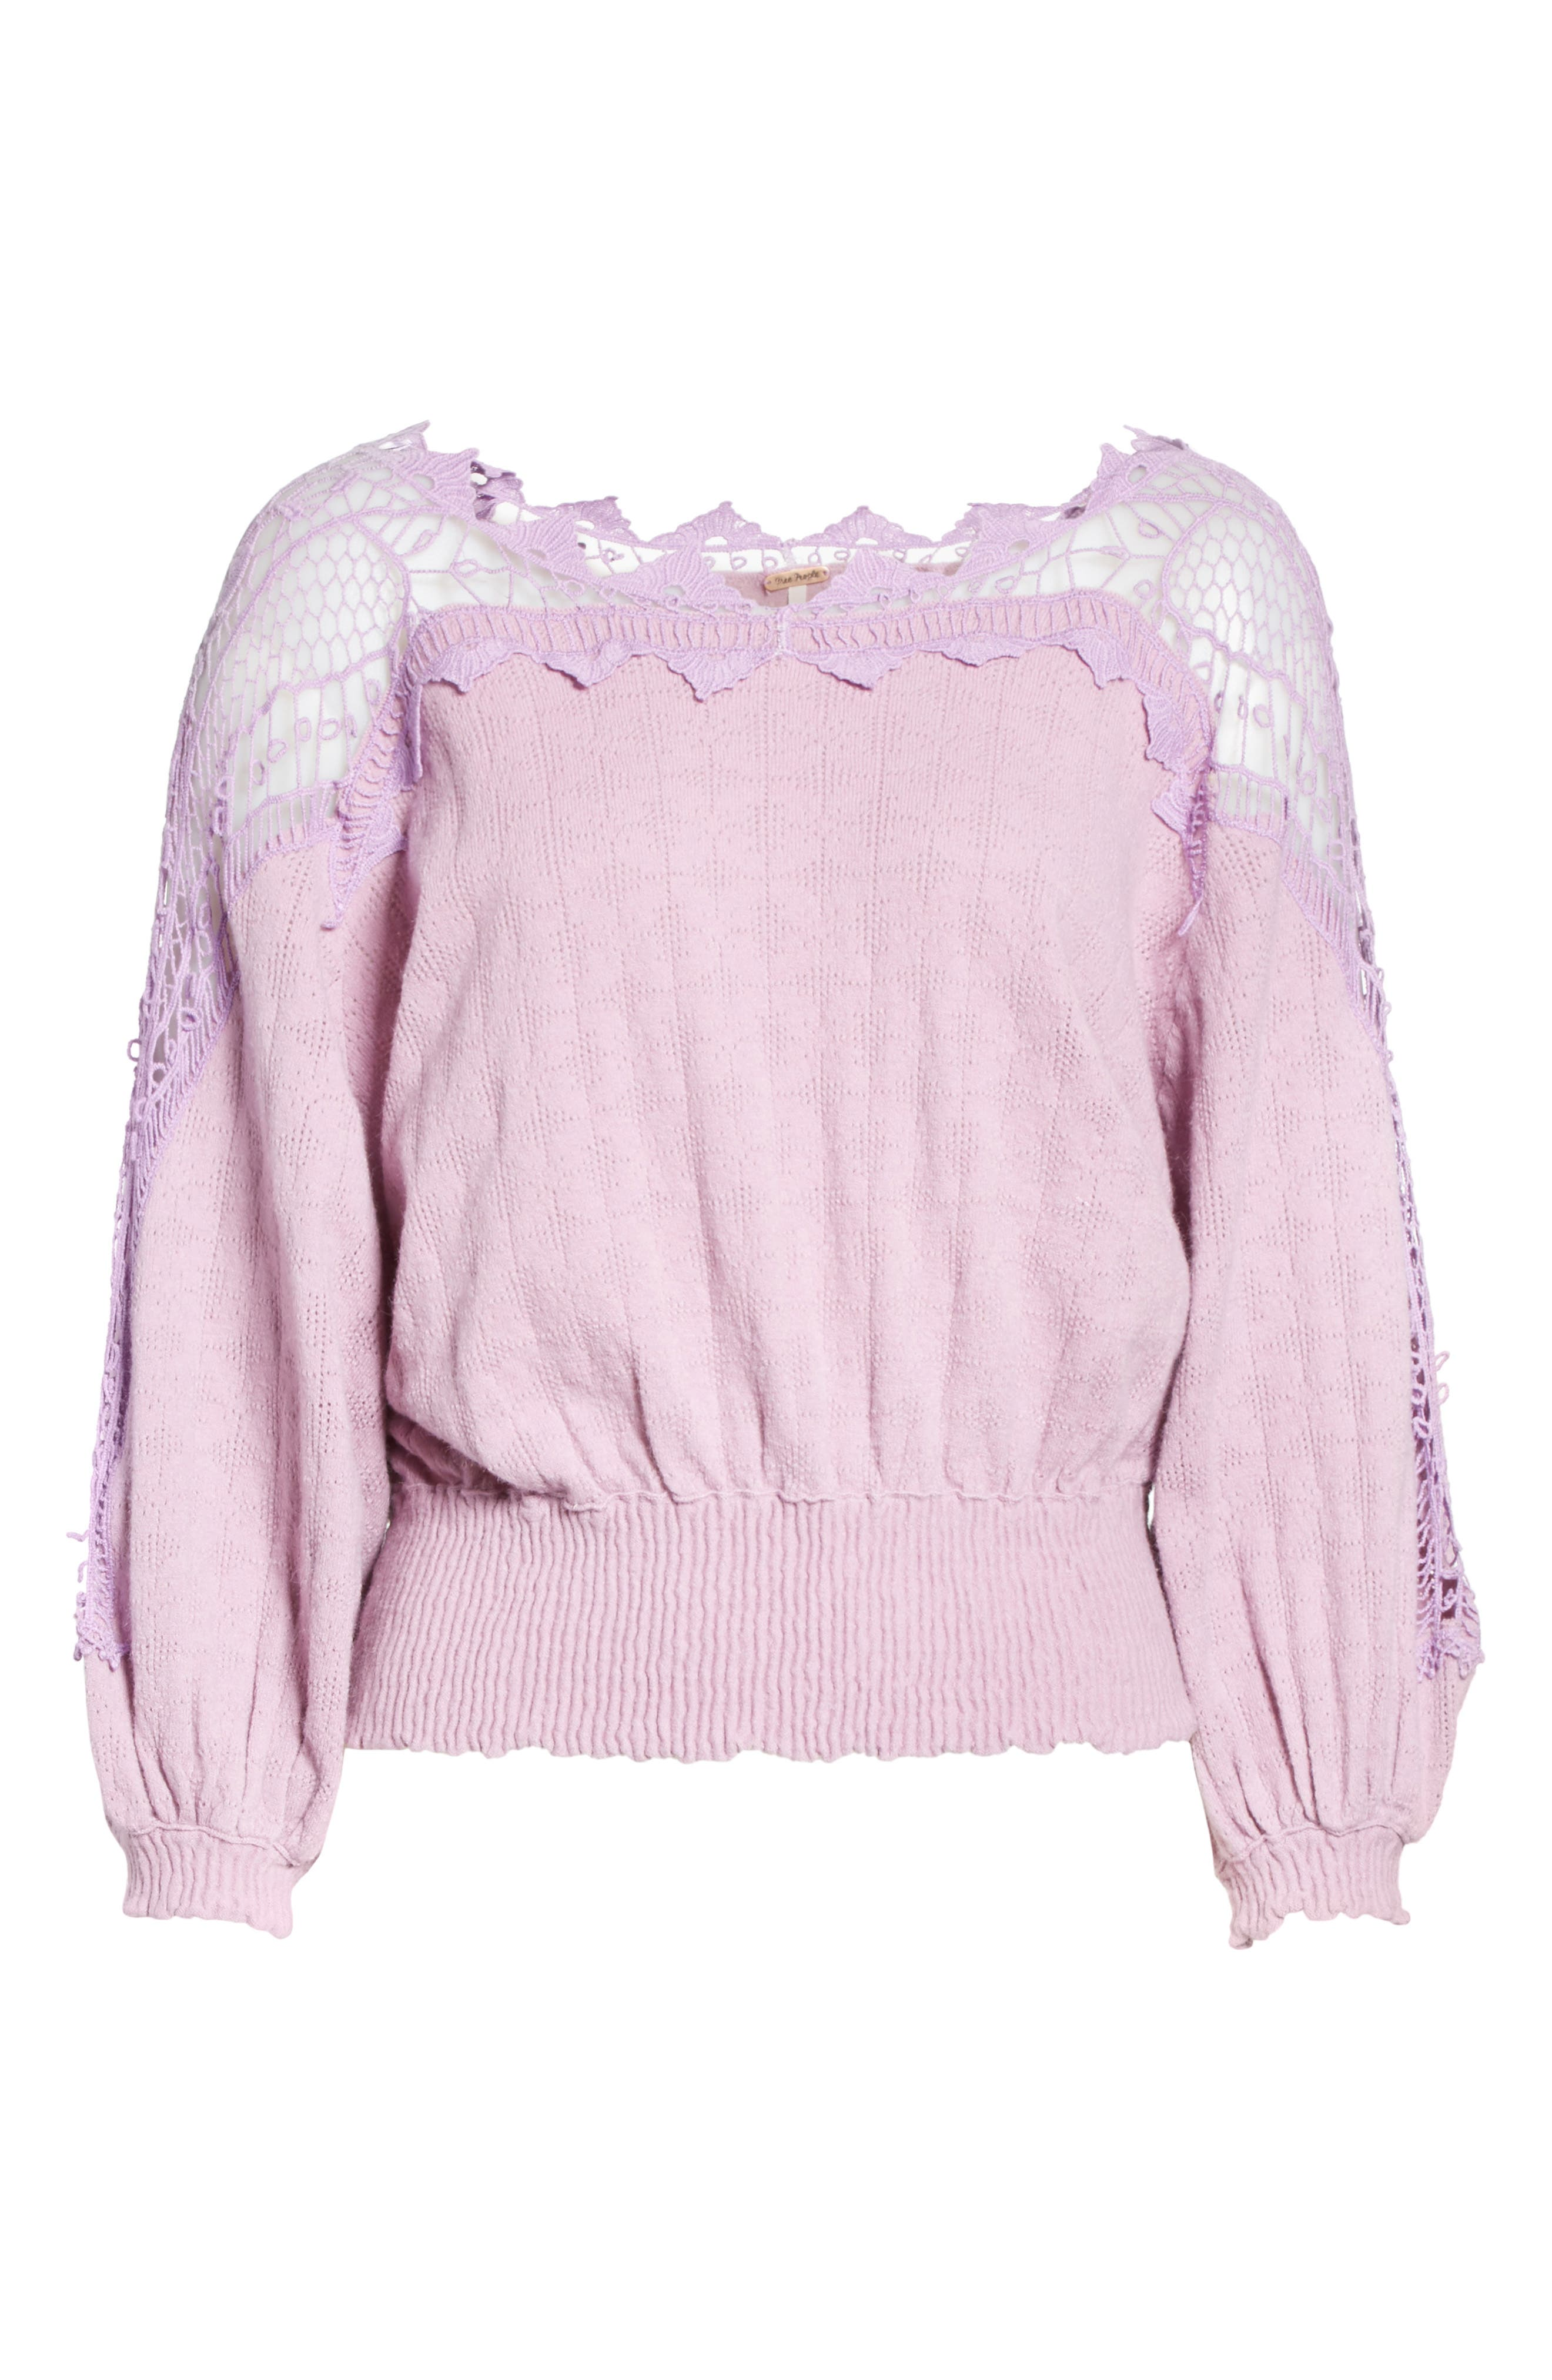 Love Lace Sweater,                             Alternate thumbnail 6, color,                             531